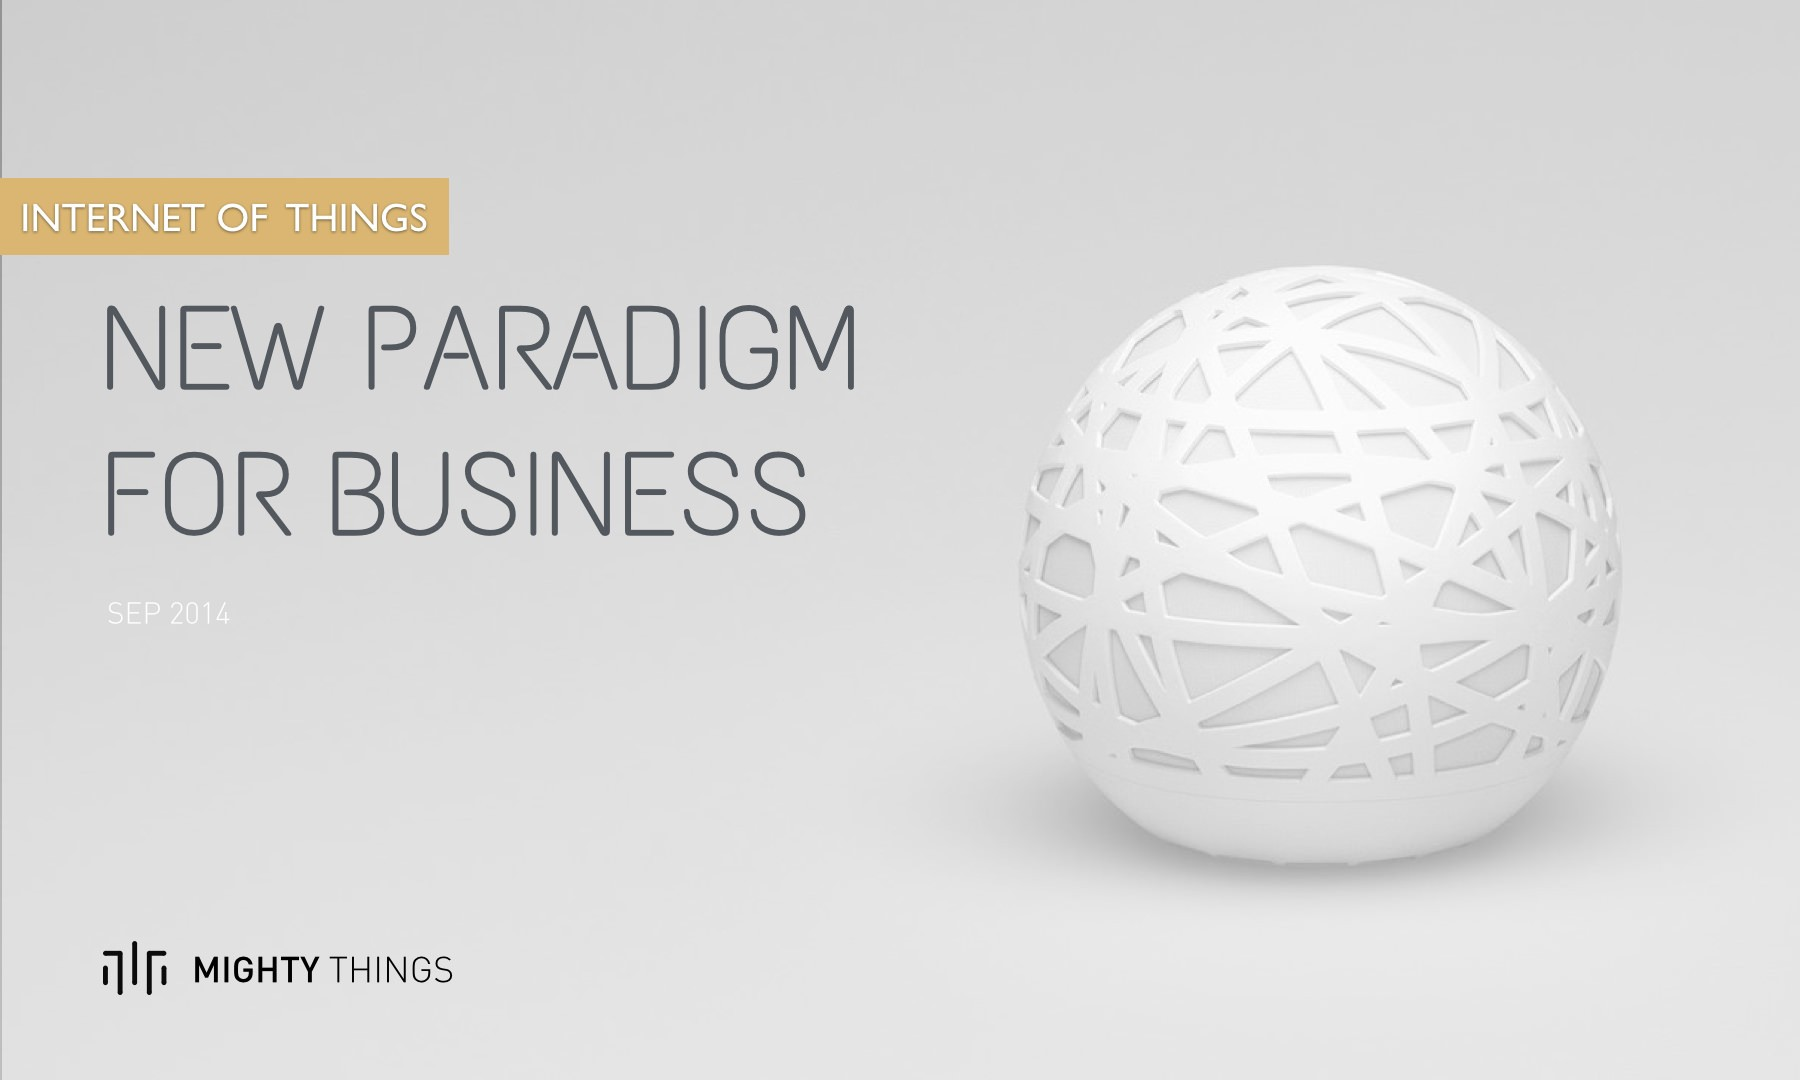 IoT: A New Paradigm For Business